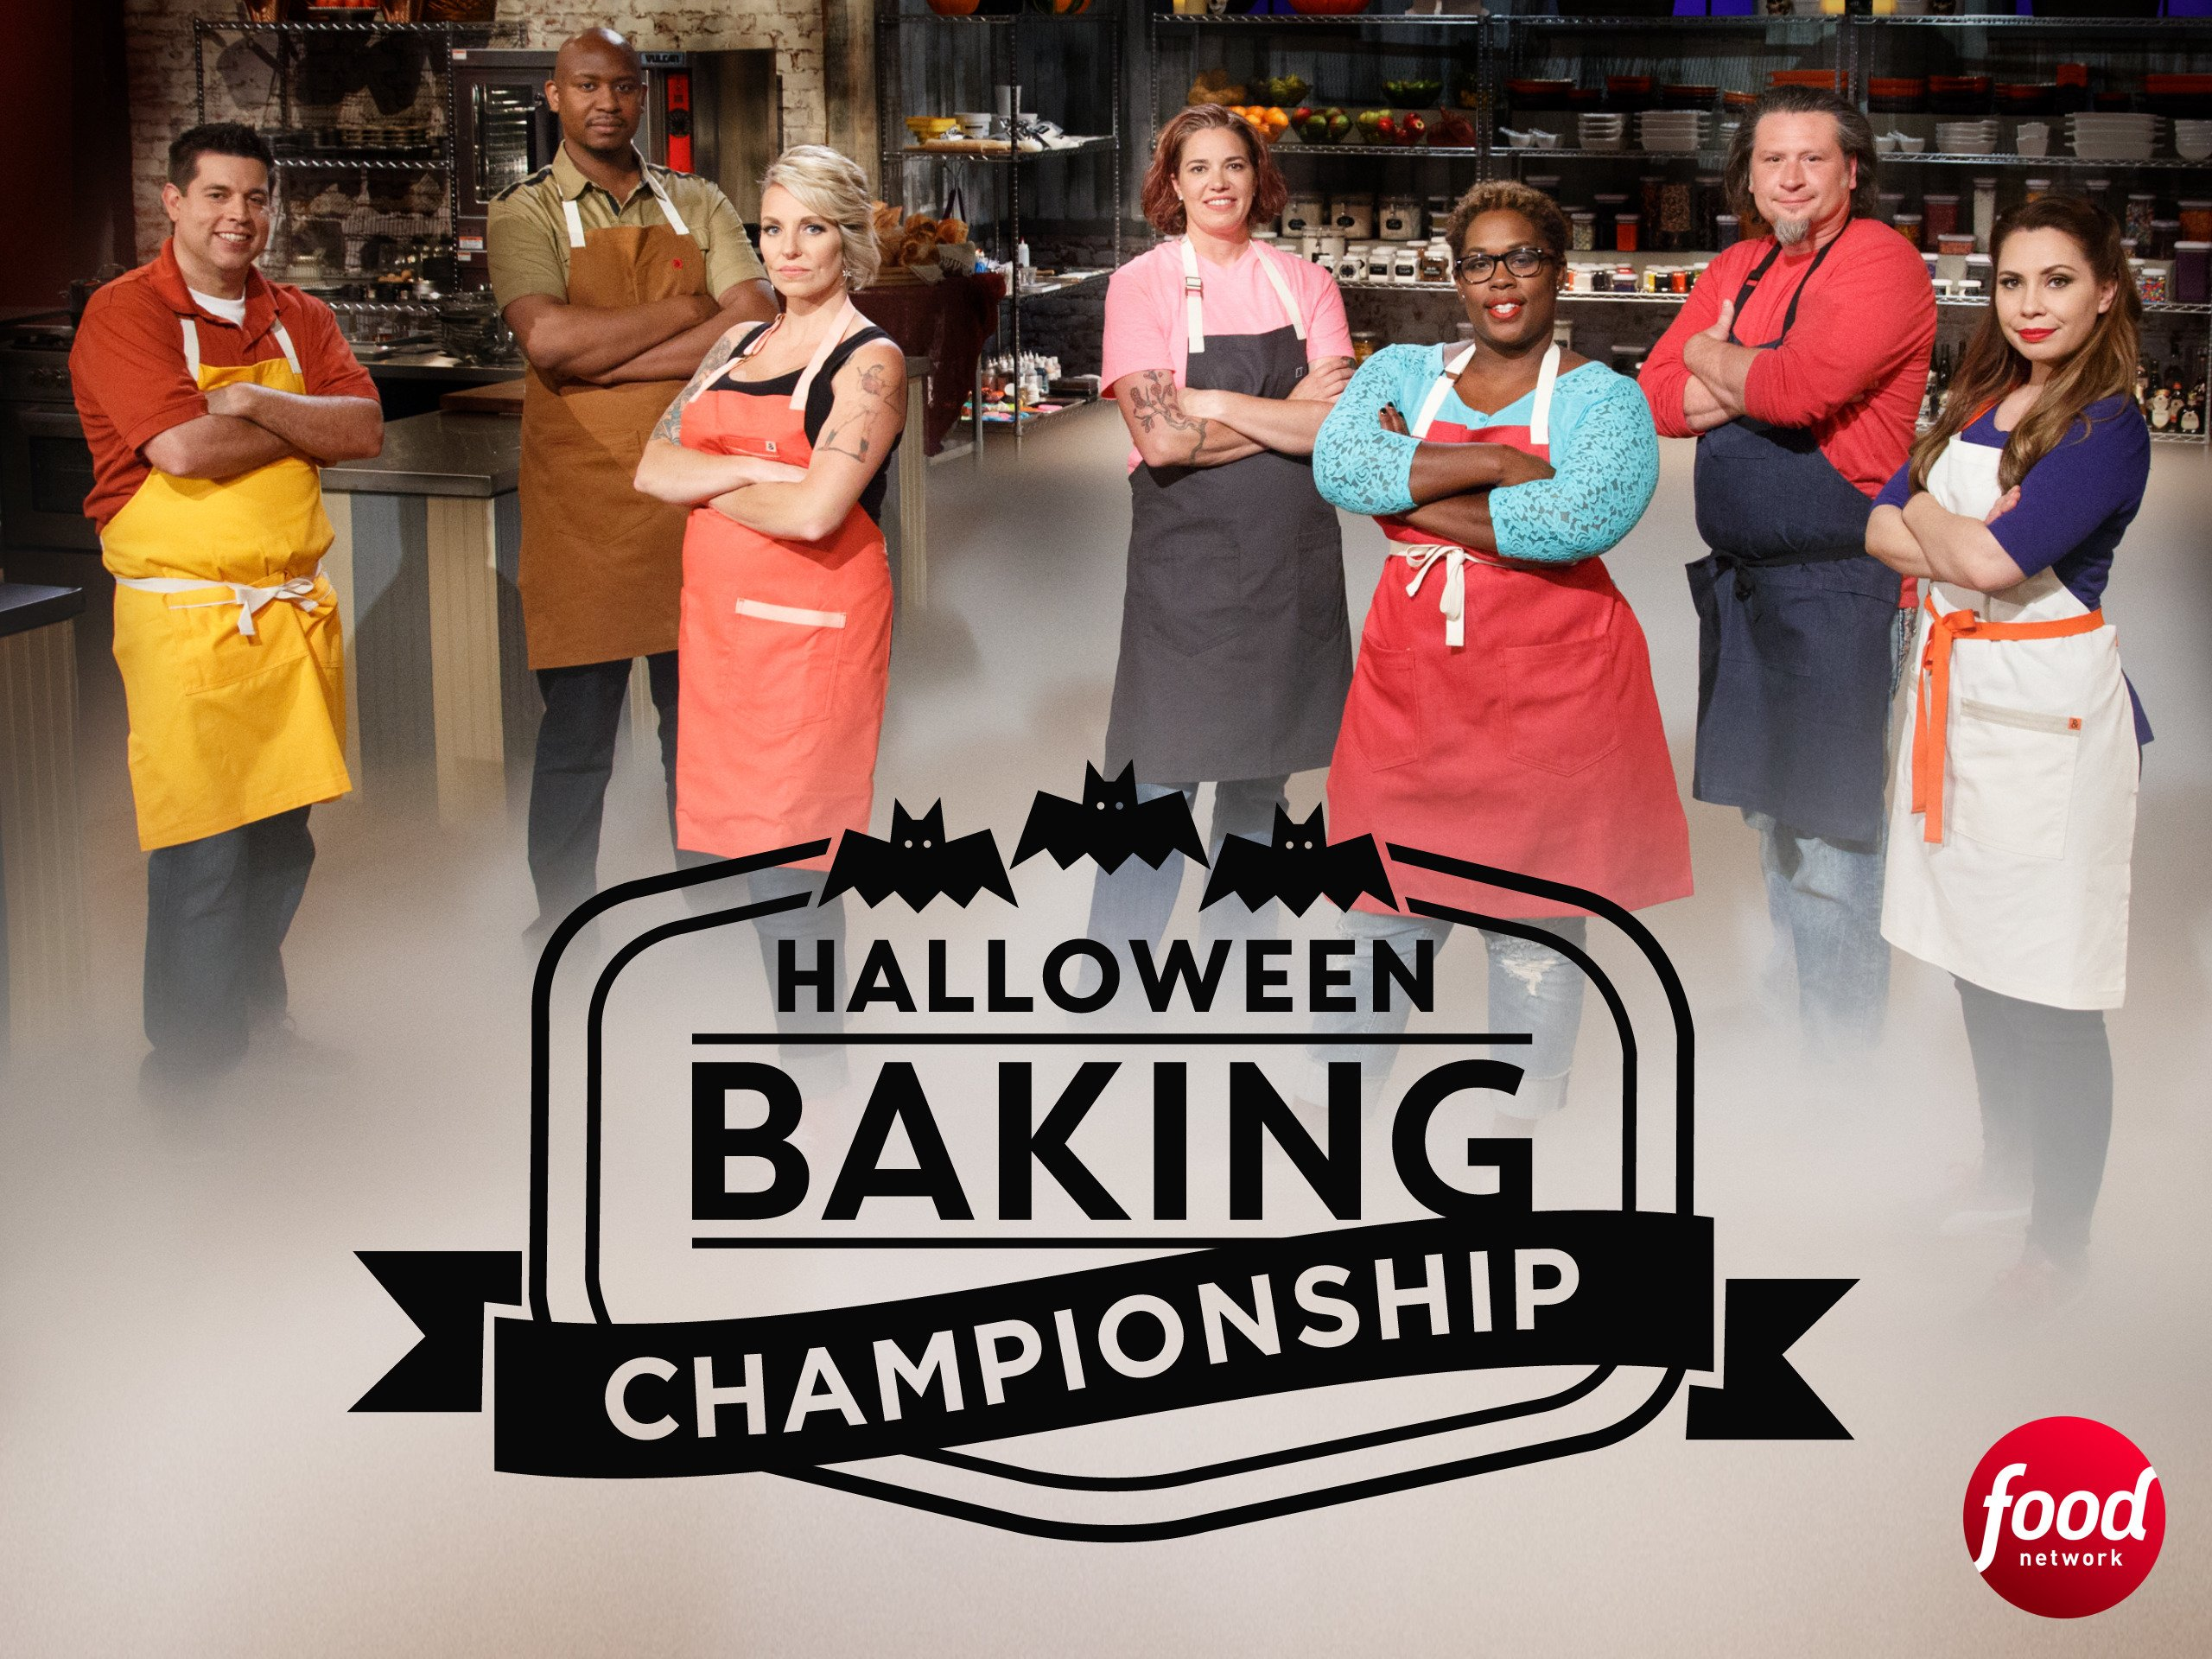 Halloween Baking Championship 2020 Episode 1 Watch Halloween Baking Championship, Season 2 | Prime Video